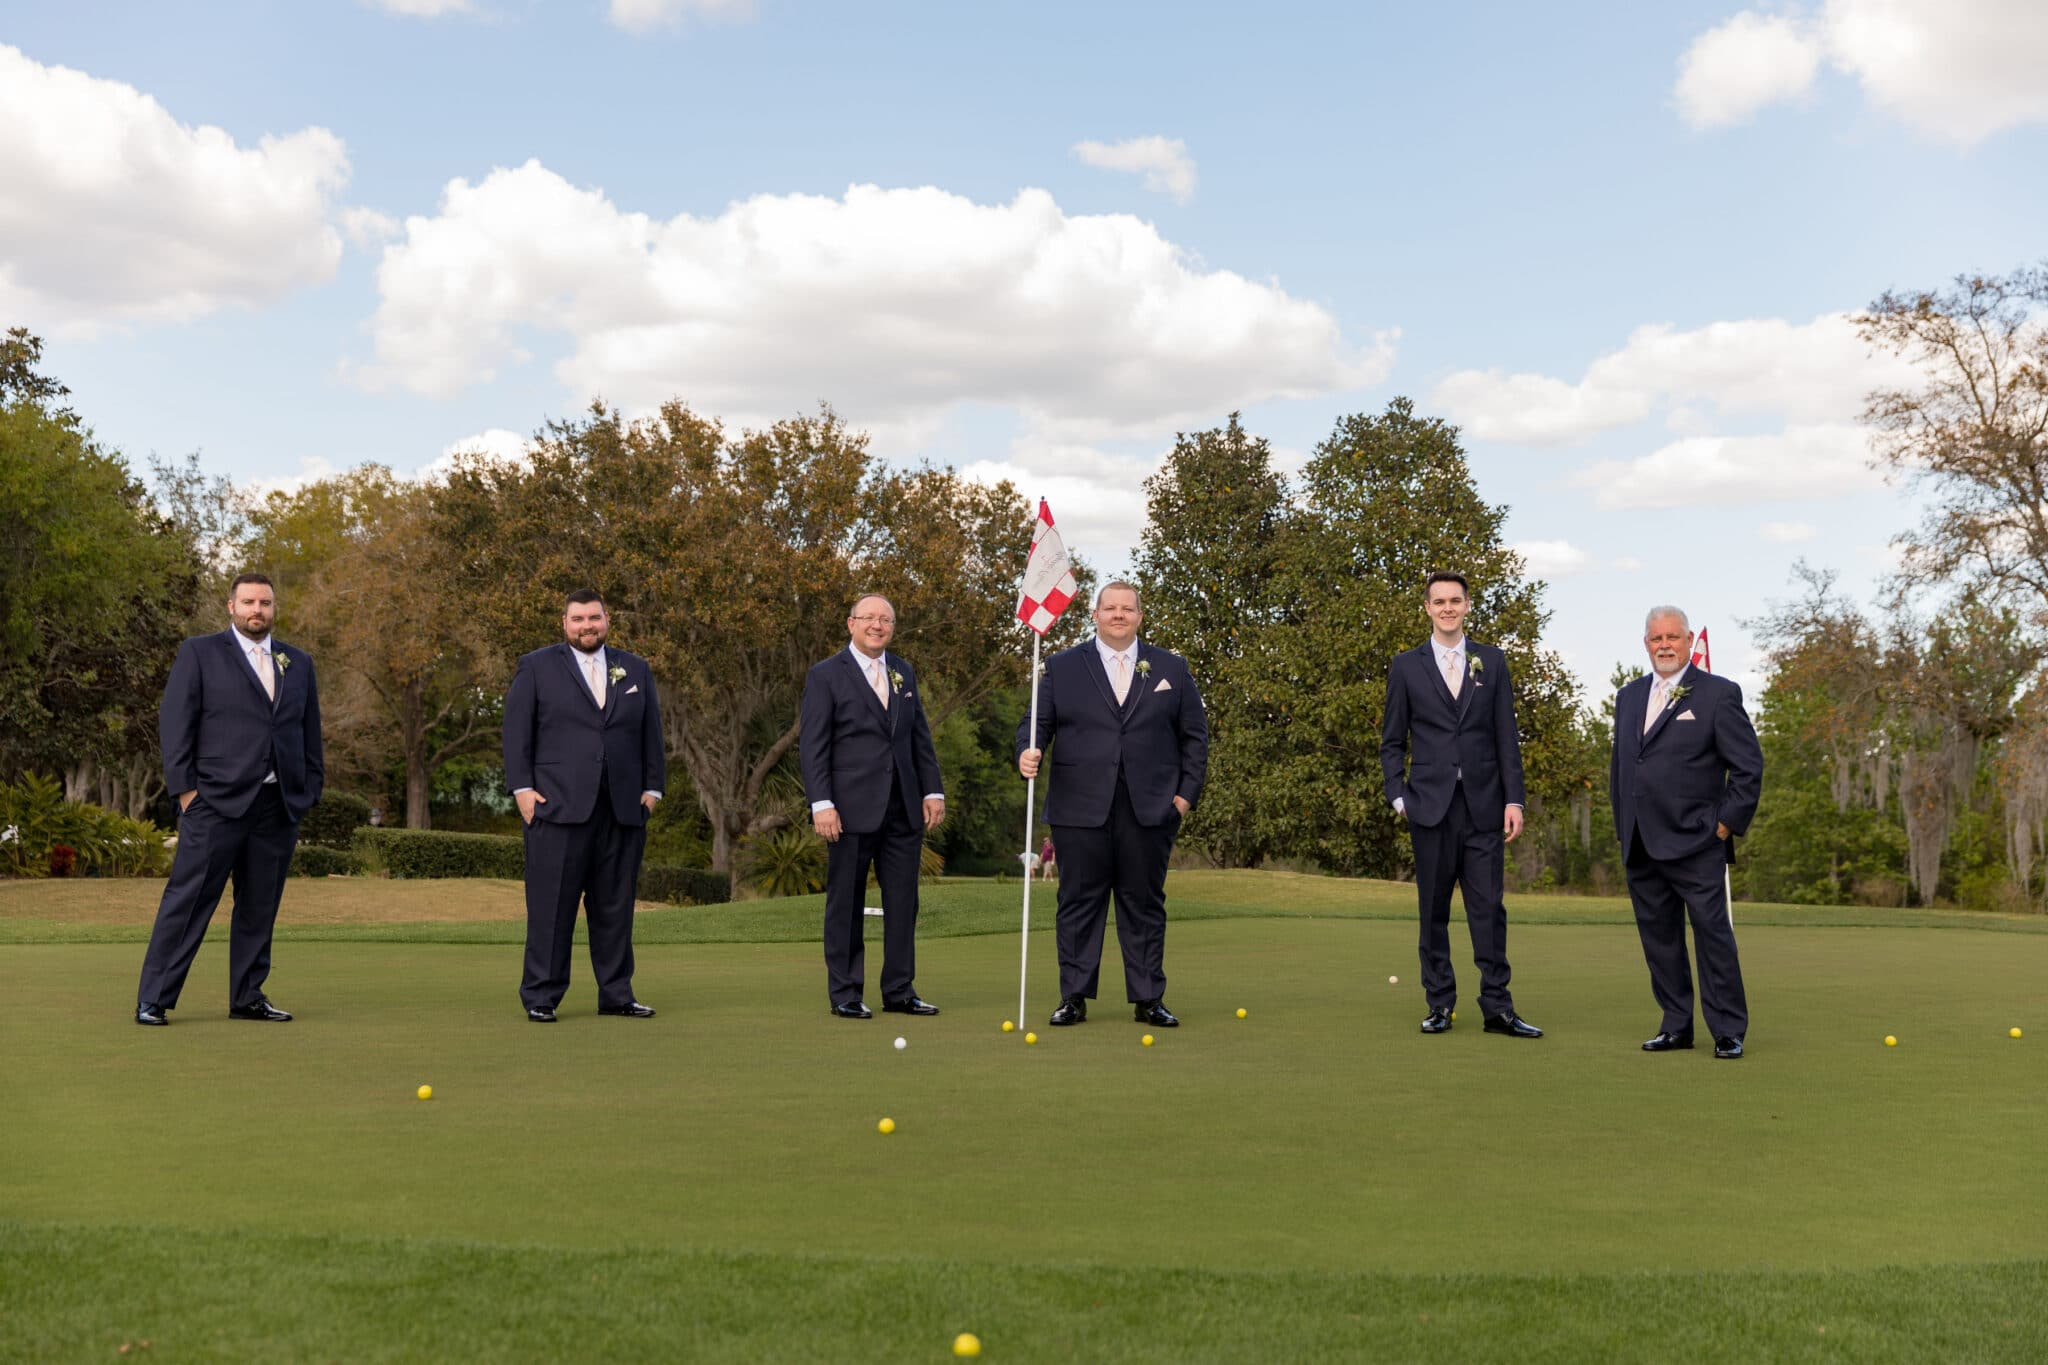 groomsmen standing on golf course with flag